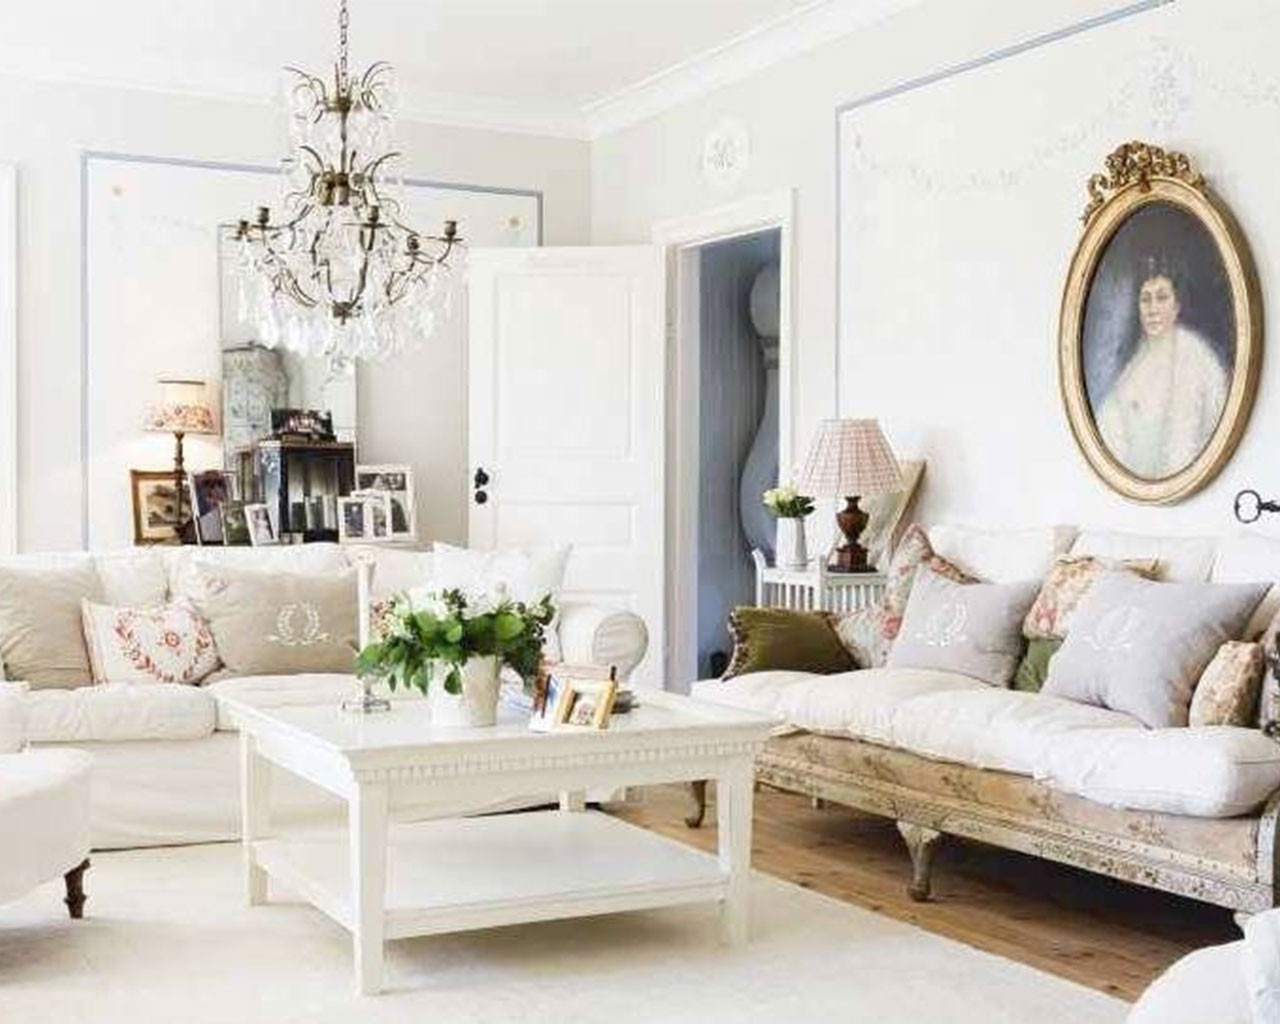 Floor Vases for Living Room Of White Living Room Decor Lovely Living Room White Floor Vase Luxury H Regarding Living Room Decorating Ideas White Living Room Furniture Beautiful Salon Zdja¢a¢cie